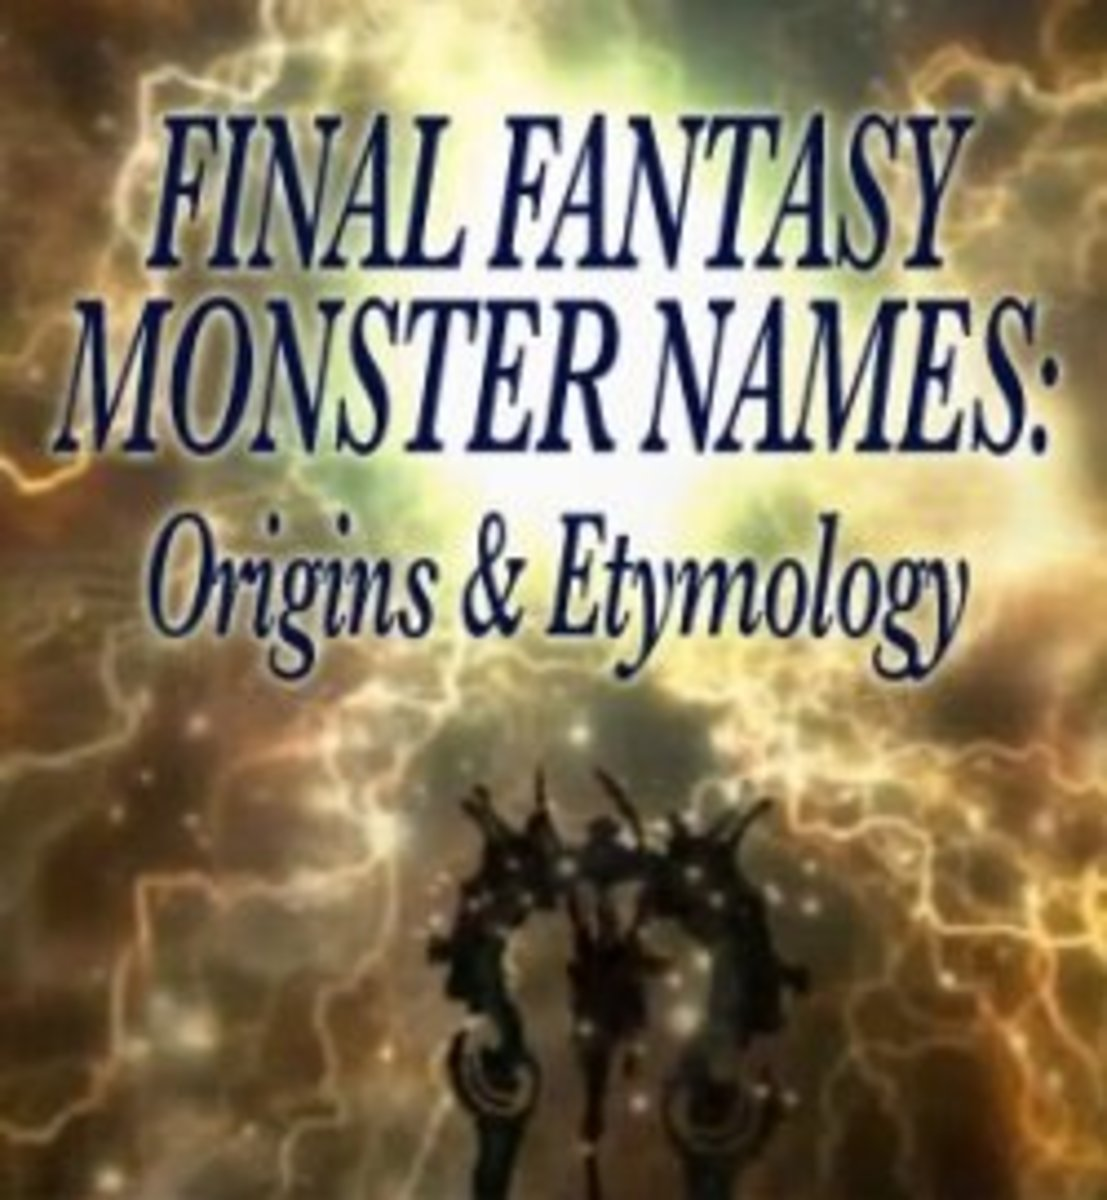 Final Fantasy Monster Names